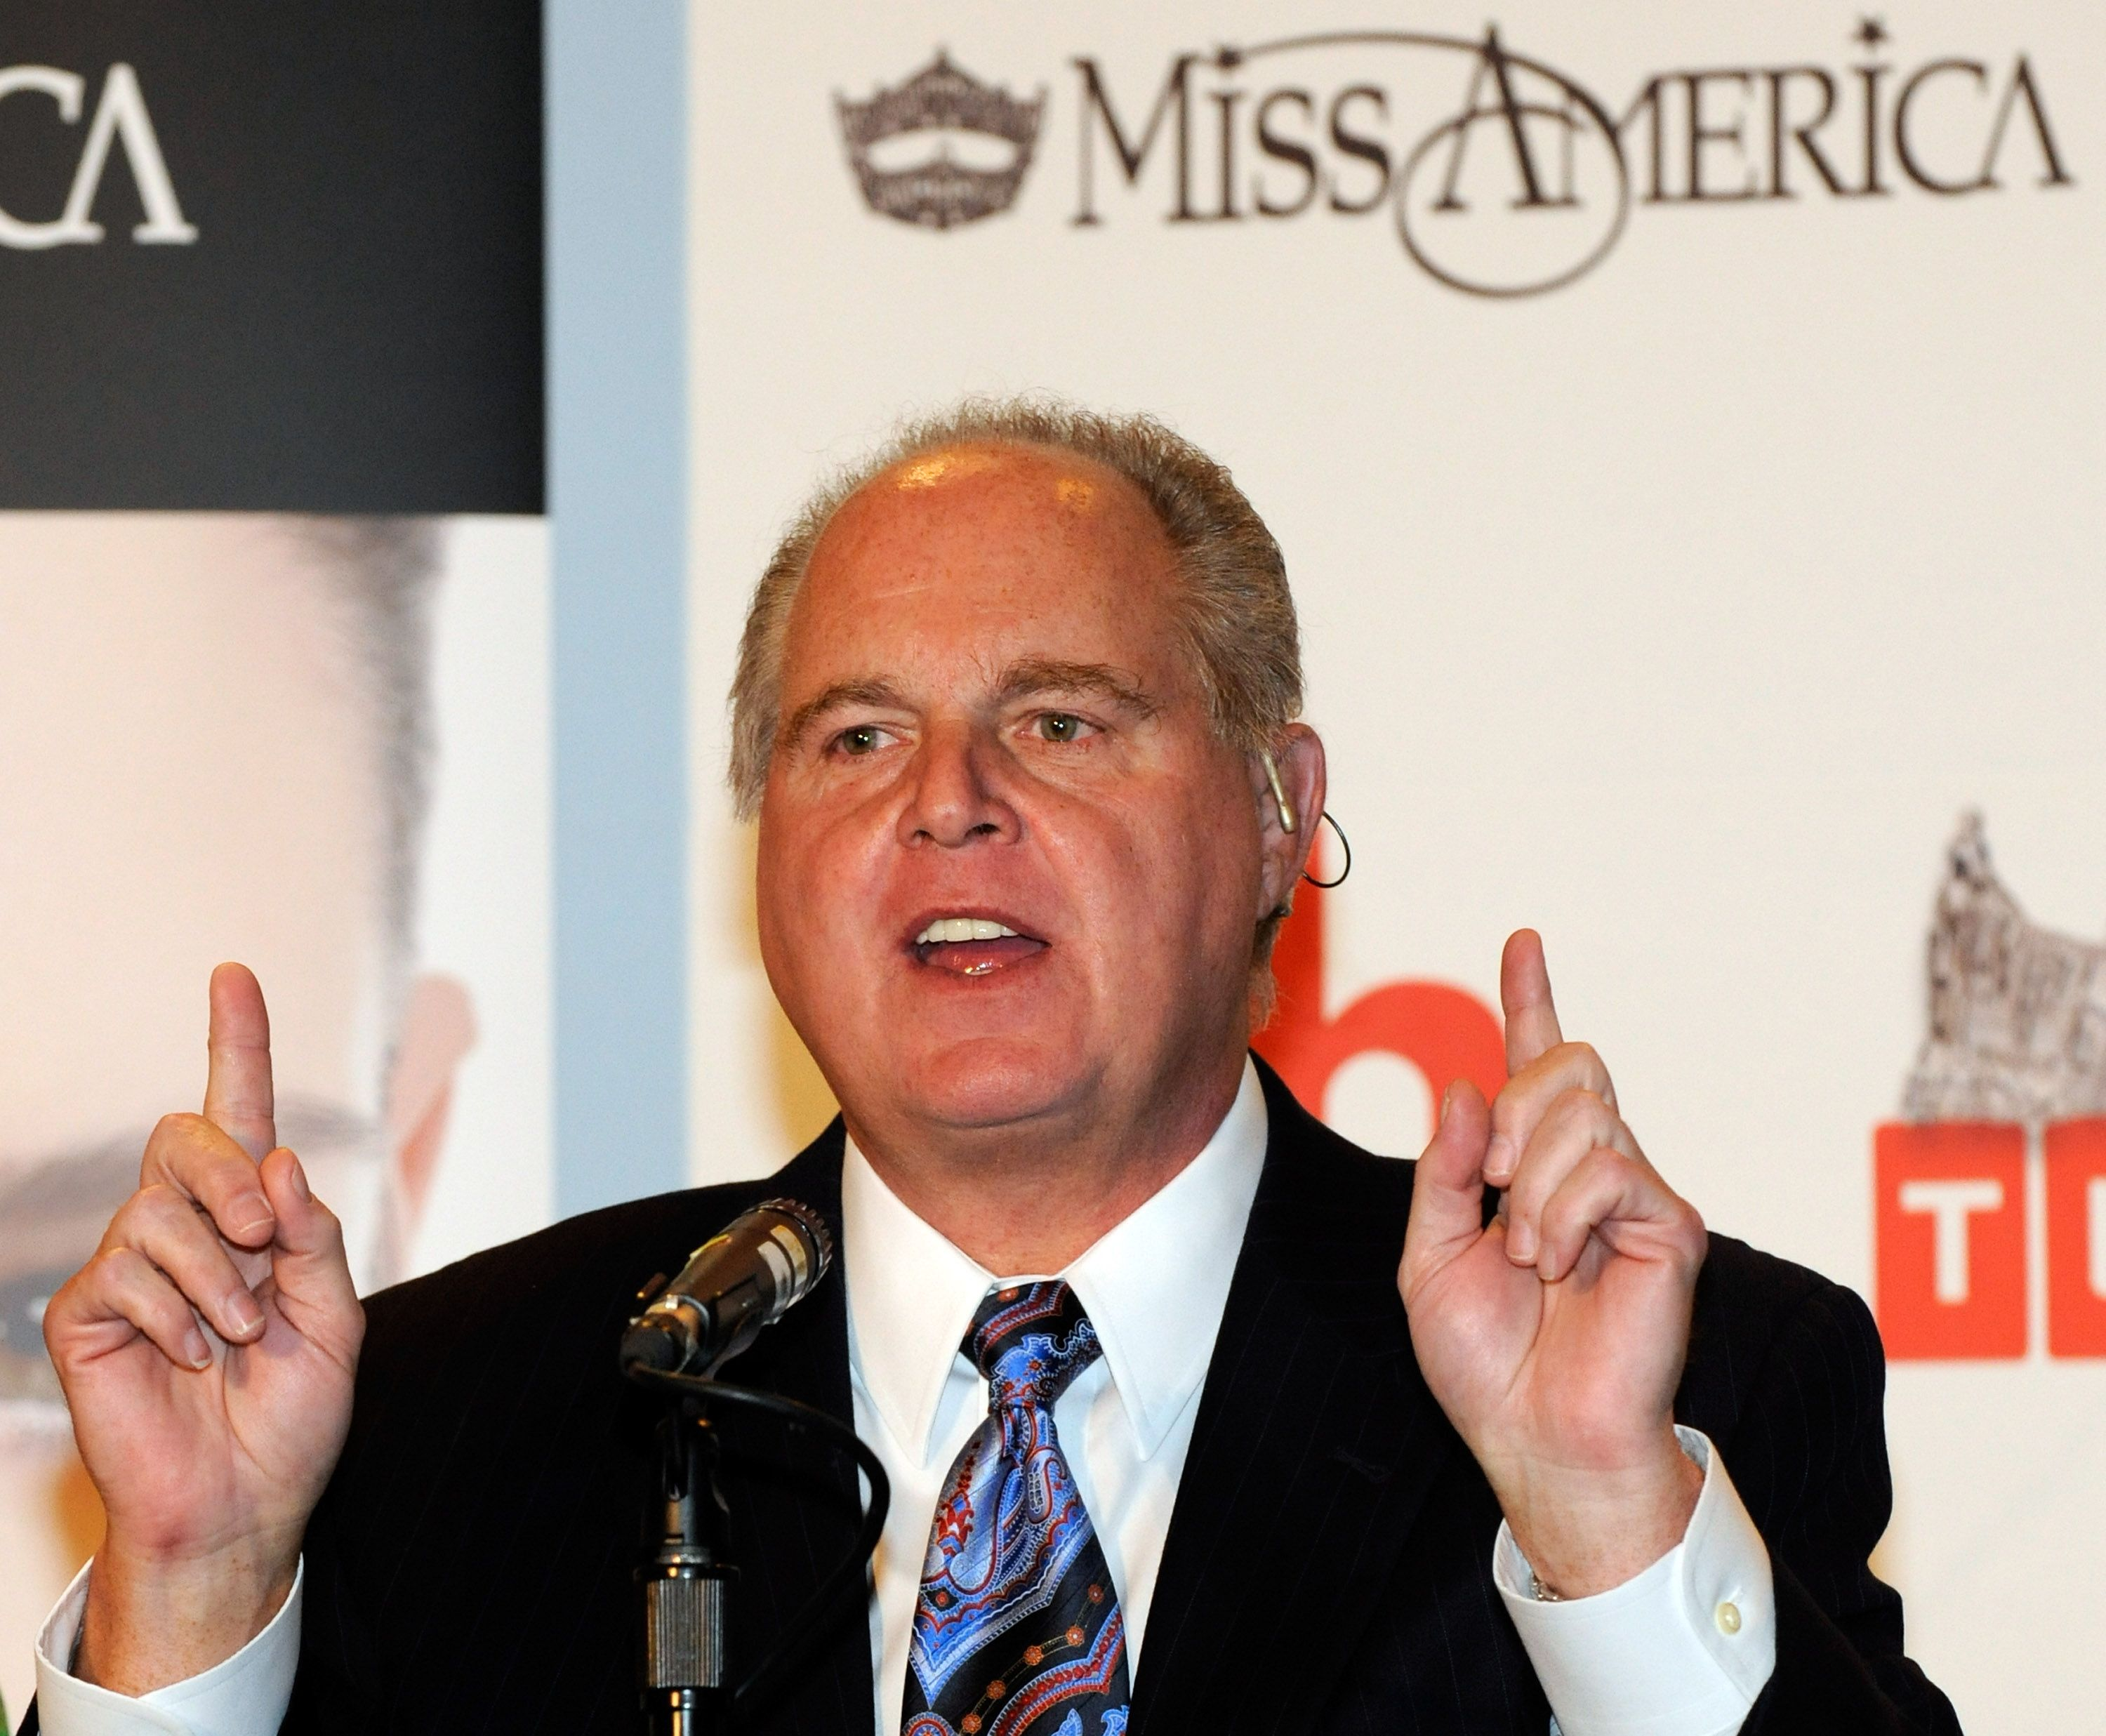 Rush Limbaugh during a conference for Miss America Pageant judges on January 27, 2010, in Las Vegas, Nevada. | Source: Getty Images